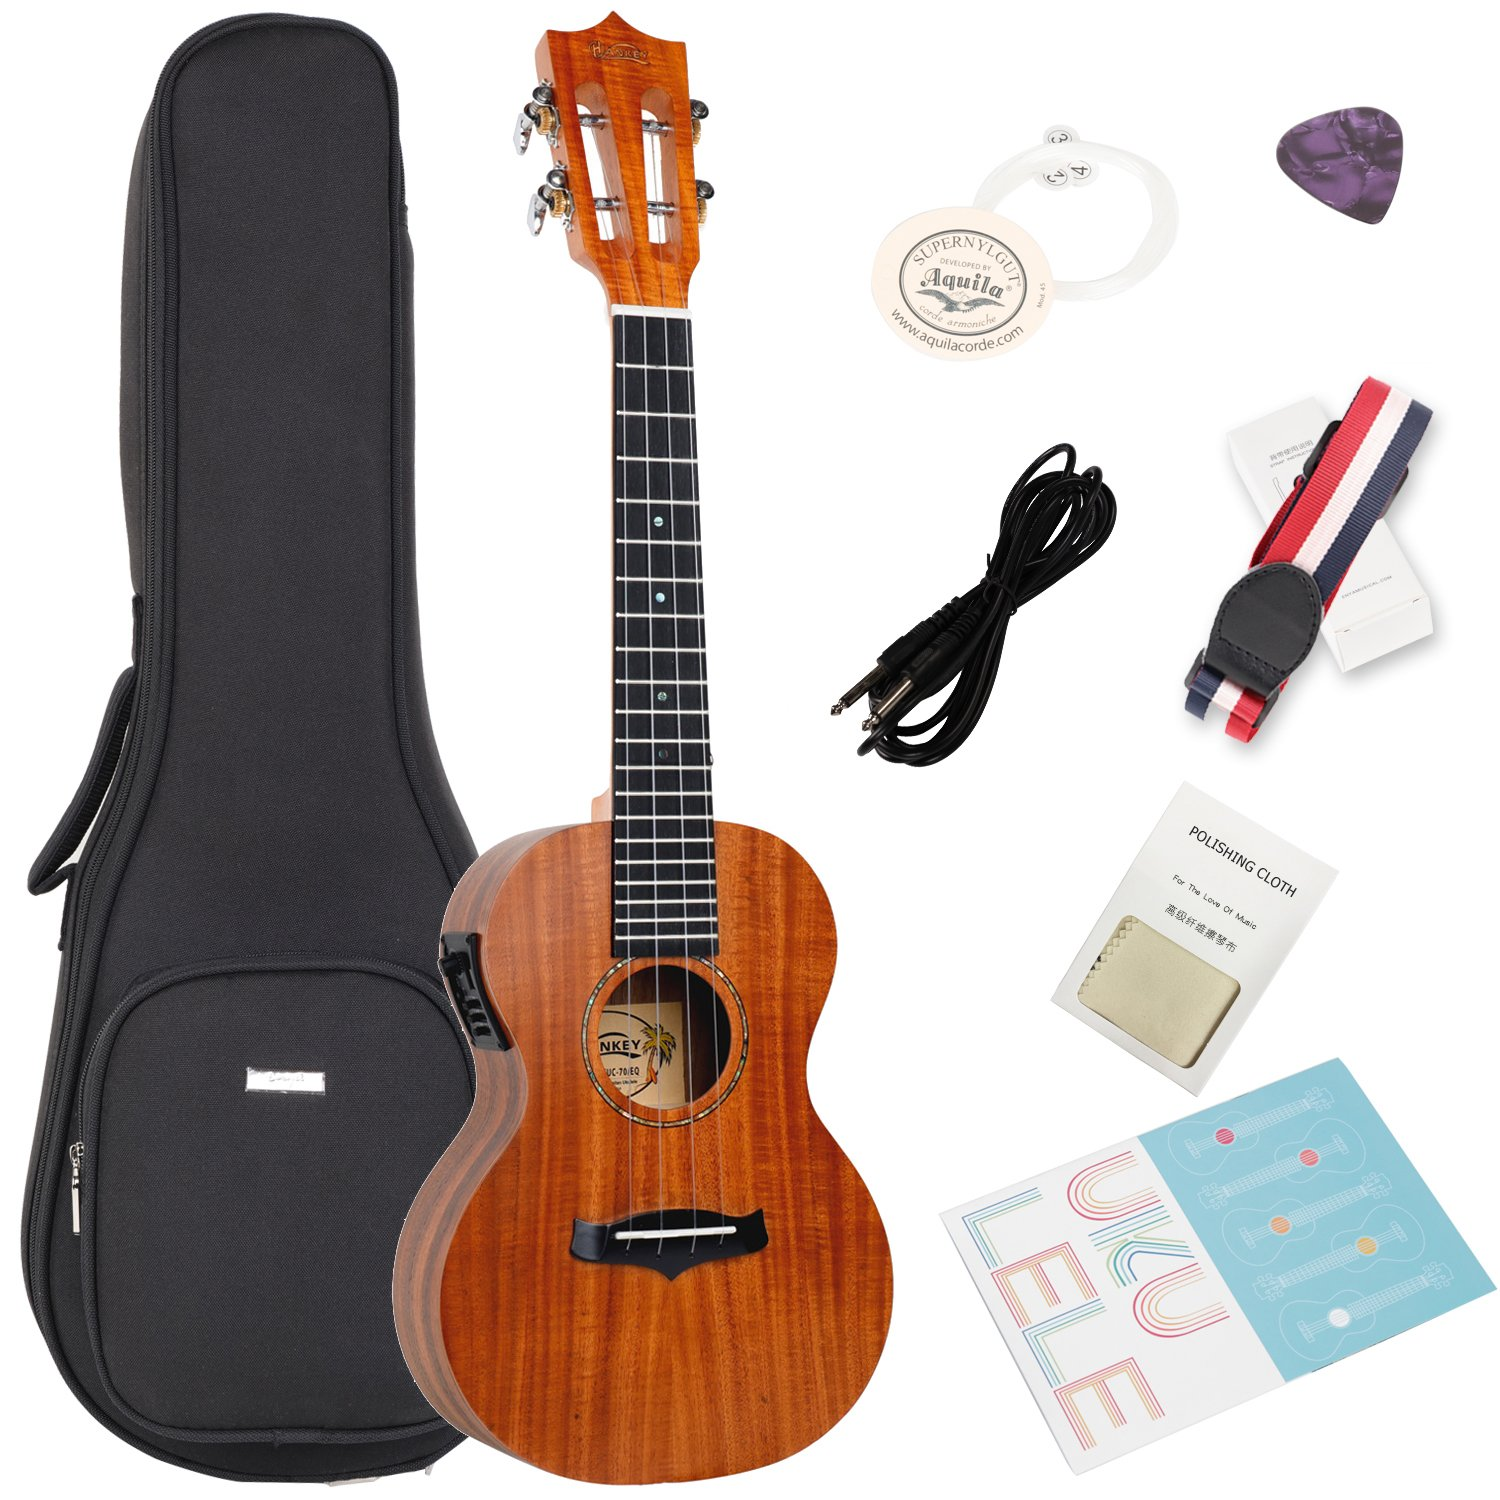 Acoustic Electric Concert Ukulele with Bag,Strap,Extra Aquila Strings,Polishing Cloth,2 Pins Installed,Instructional Book,By HANKEY KUC-70 EQ